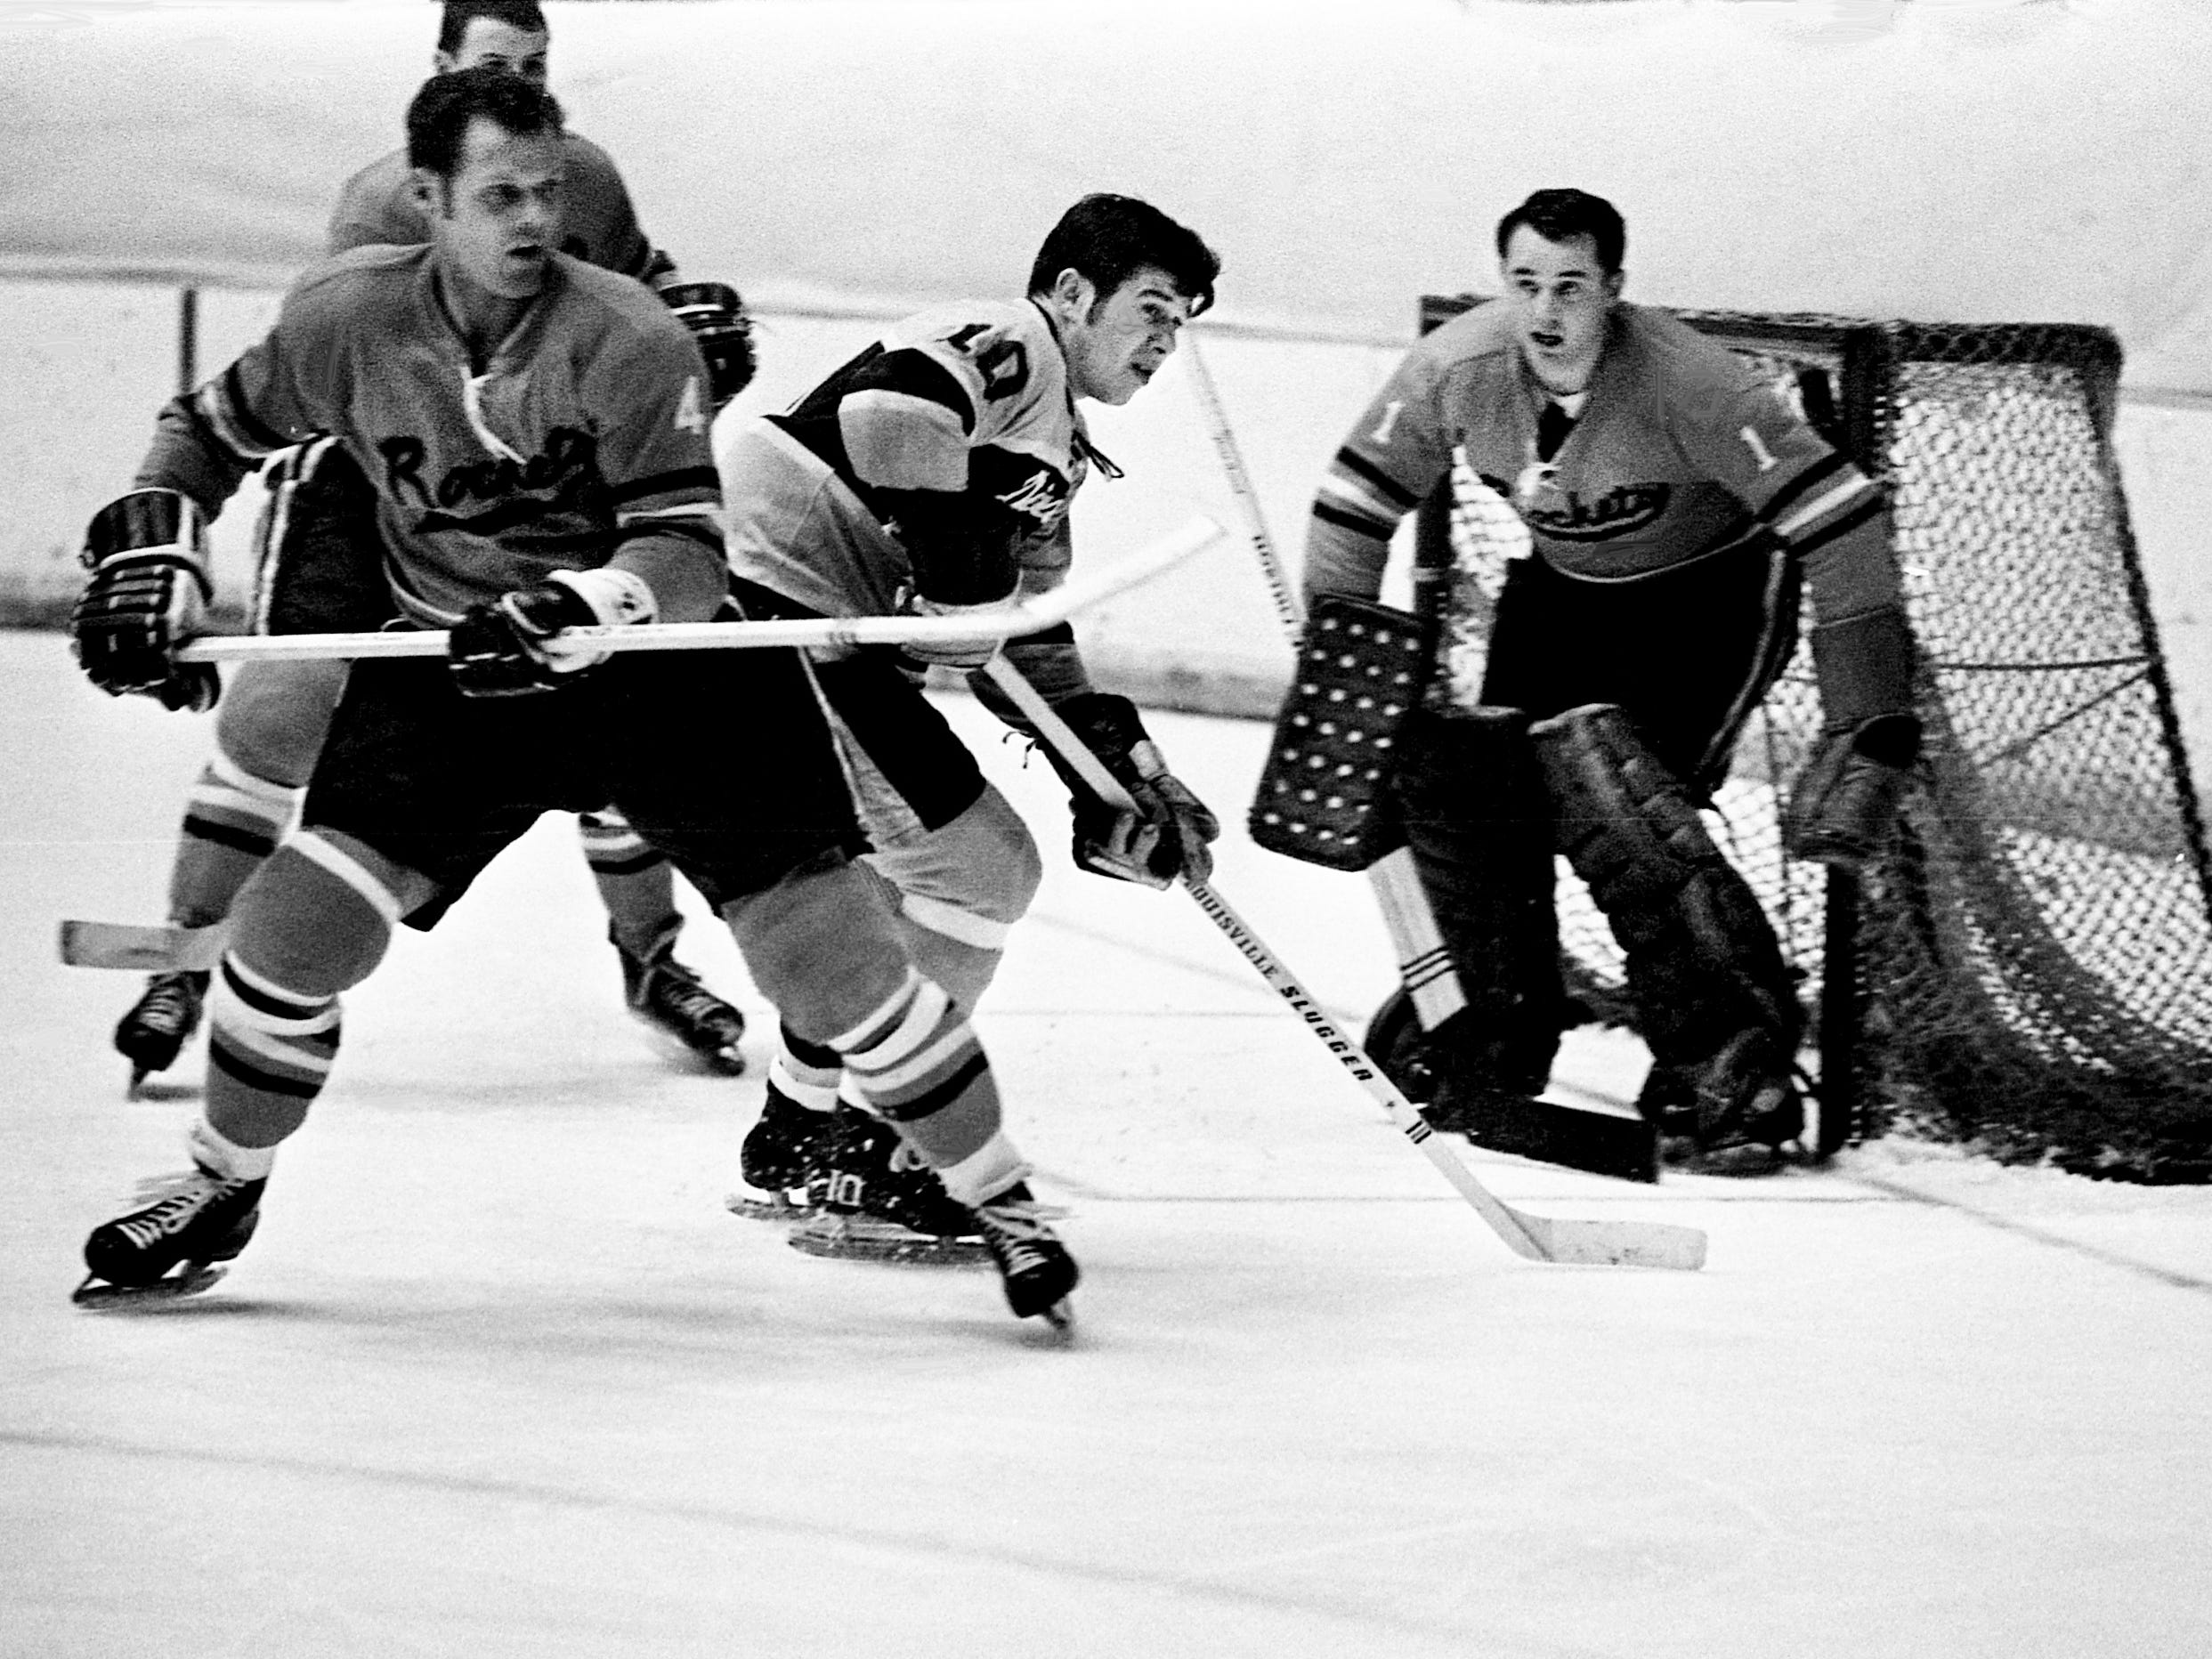 Nashville Dixie Flyers winger Andre Lajeunesse (10) positions himself in the middle of a trio of defense from Jacksonville Rockets, including defenseman Stan Melanchuck (4) and goalie Harrison Gray. The Flyers won 8-3 before a Christmas Day crowd of 2,173 at Municipal Auditorium Dec. 25, 1968.